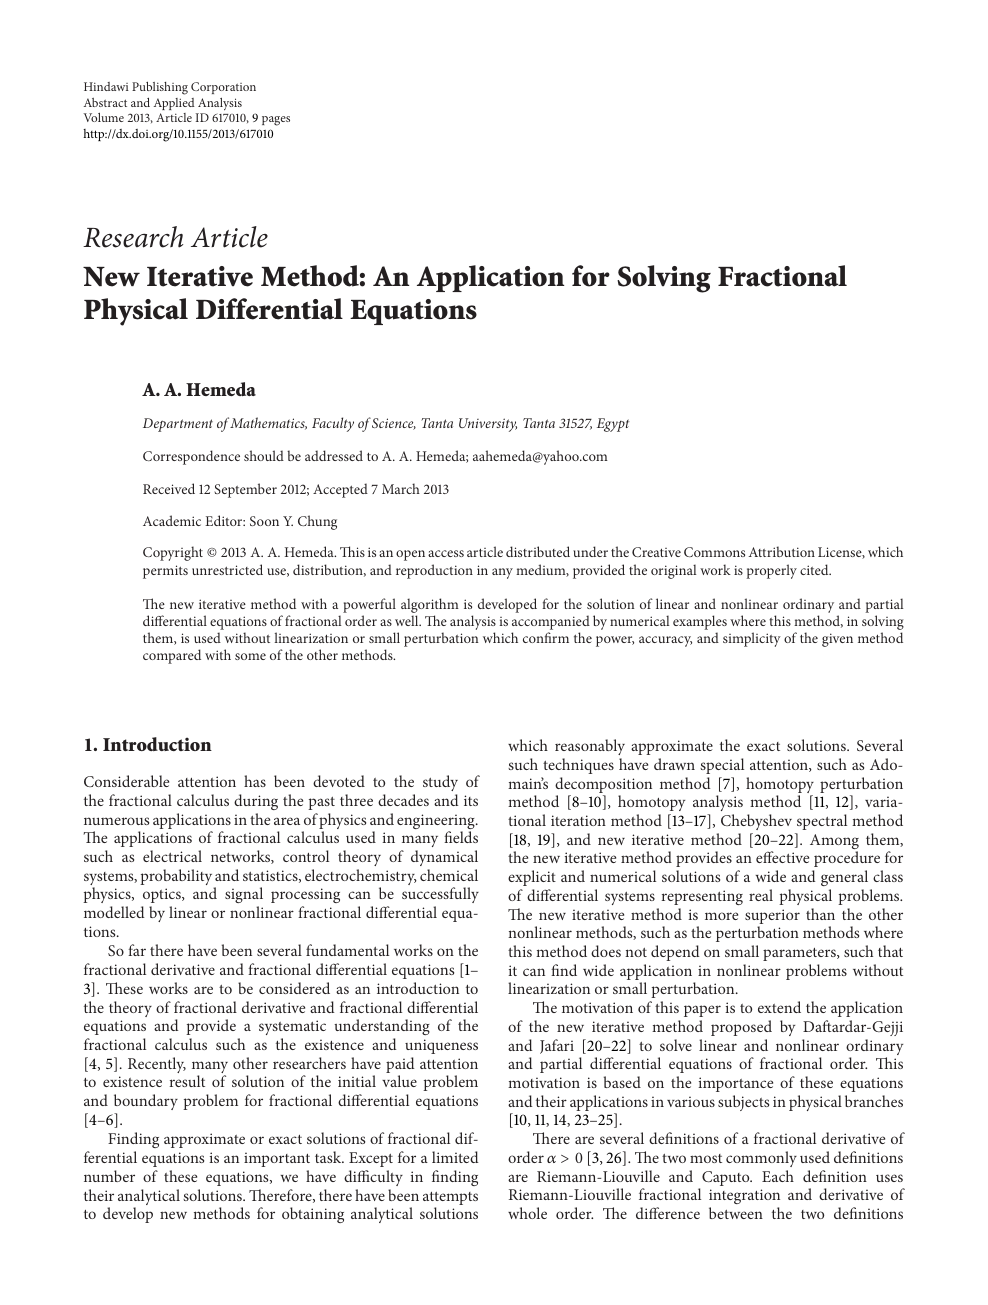 New Iterative Method: An Application for Solving Fractional